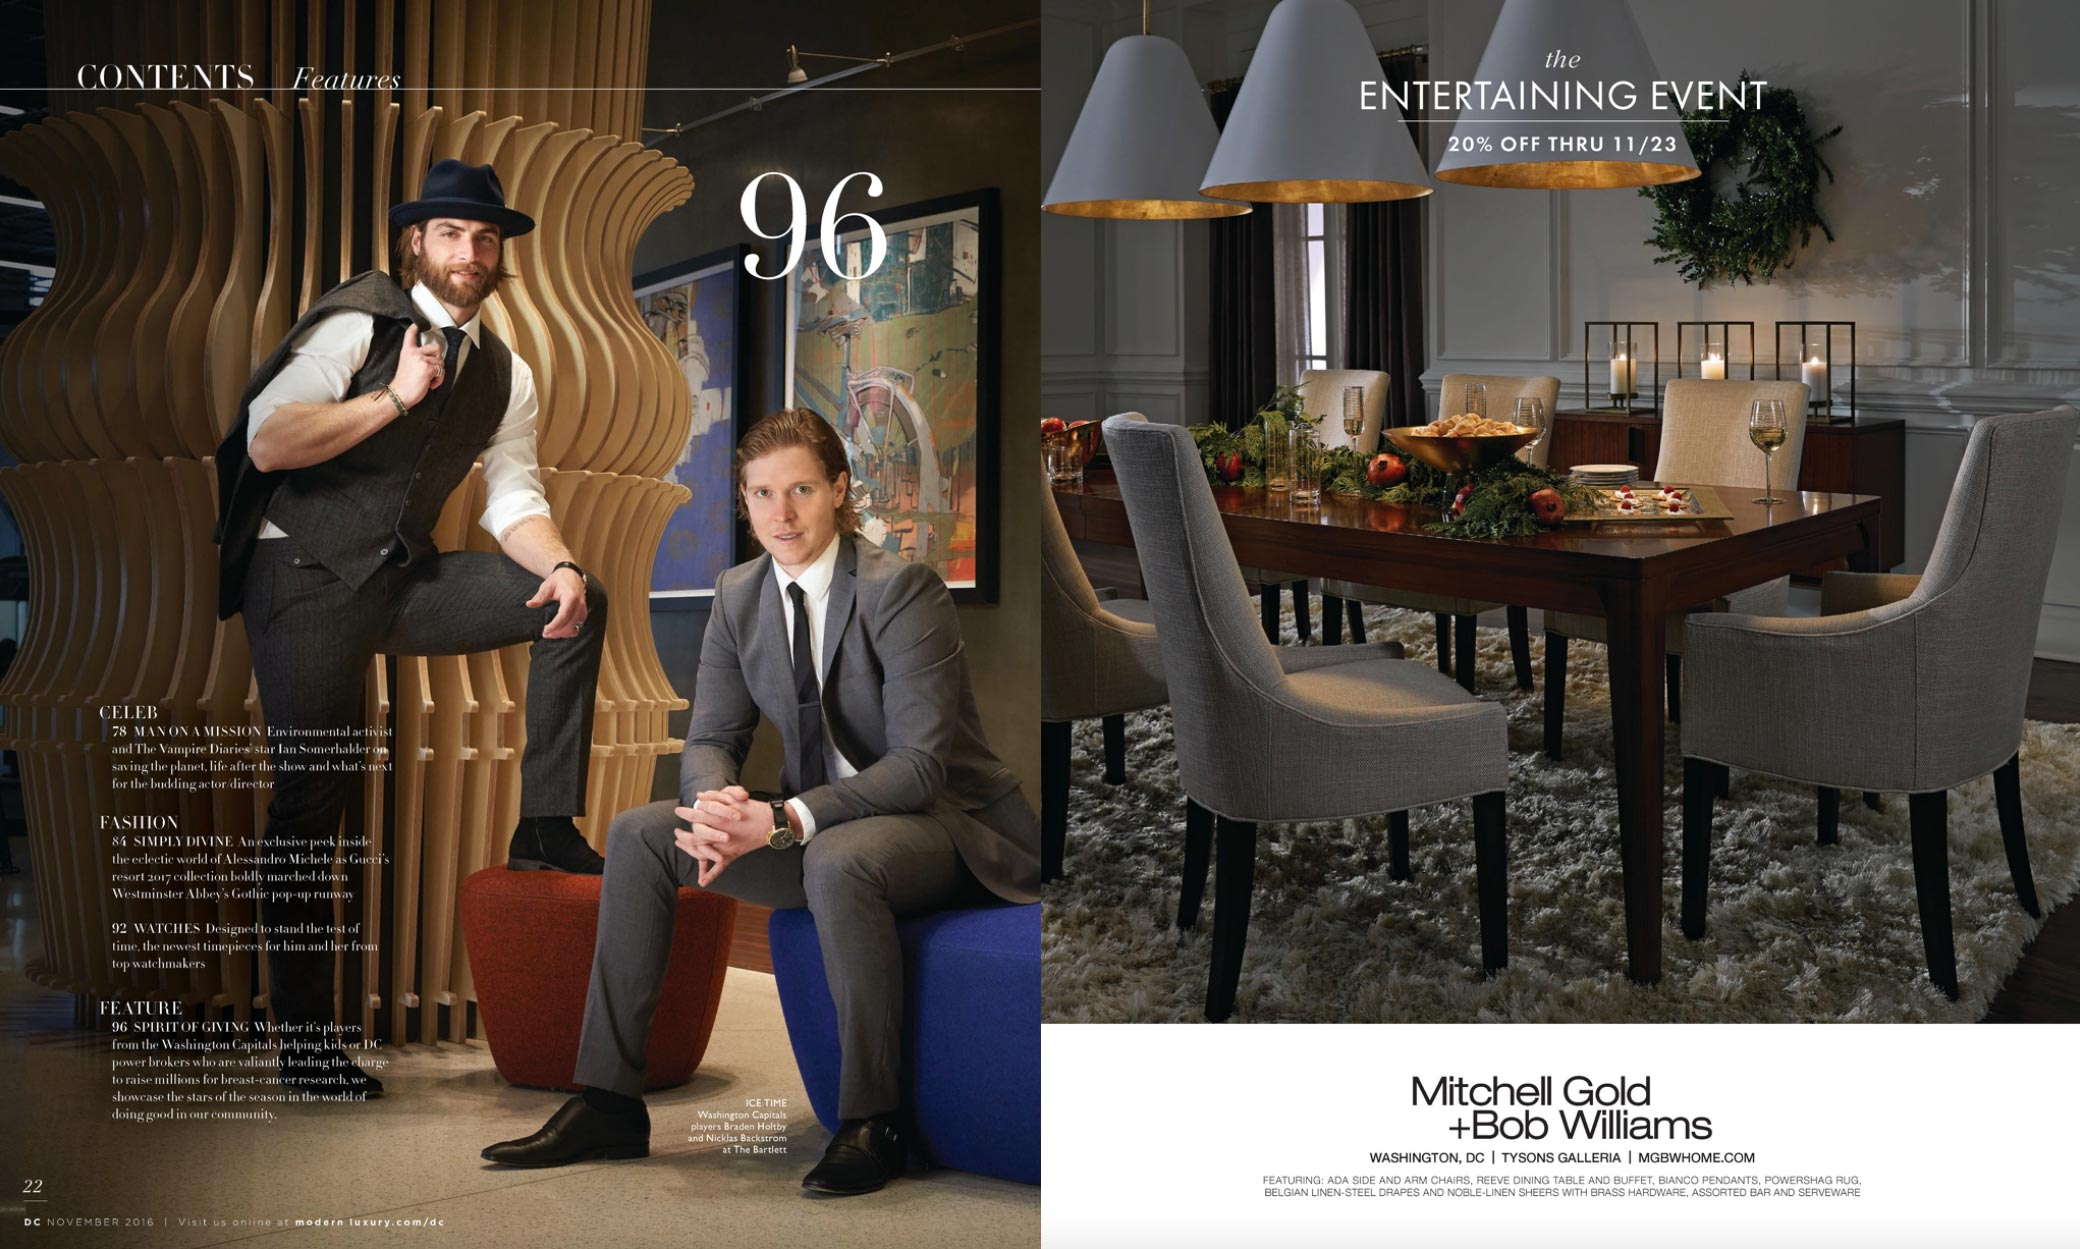 holty-backstrom-dc-modern-luxury-contents